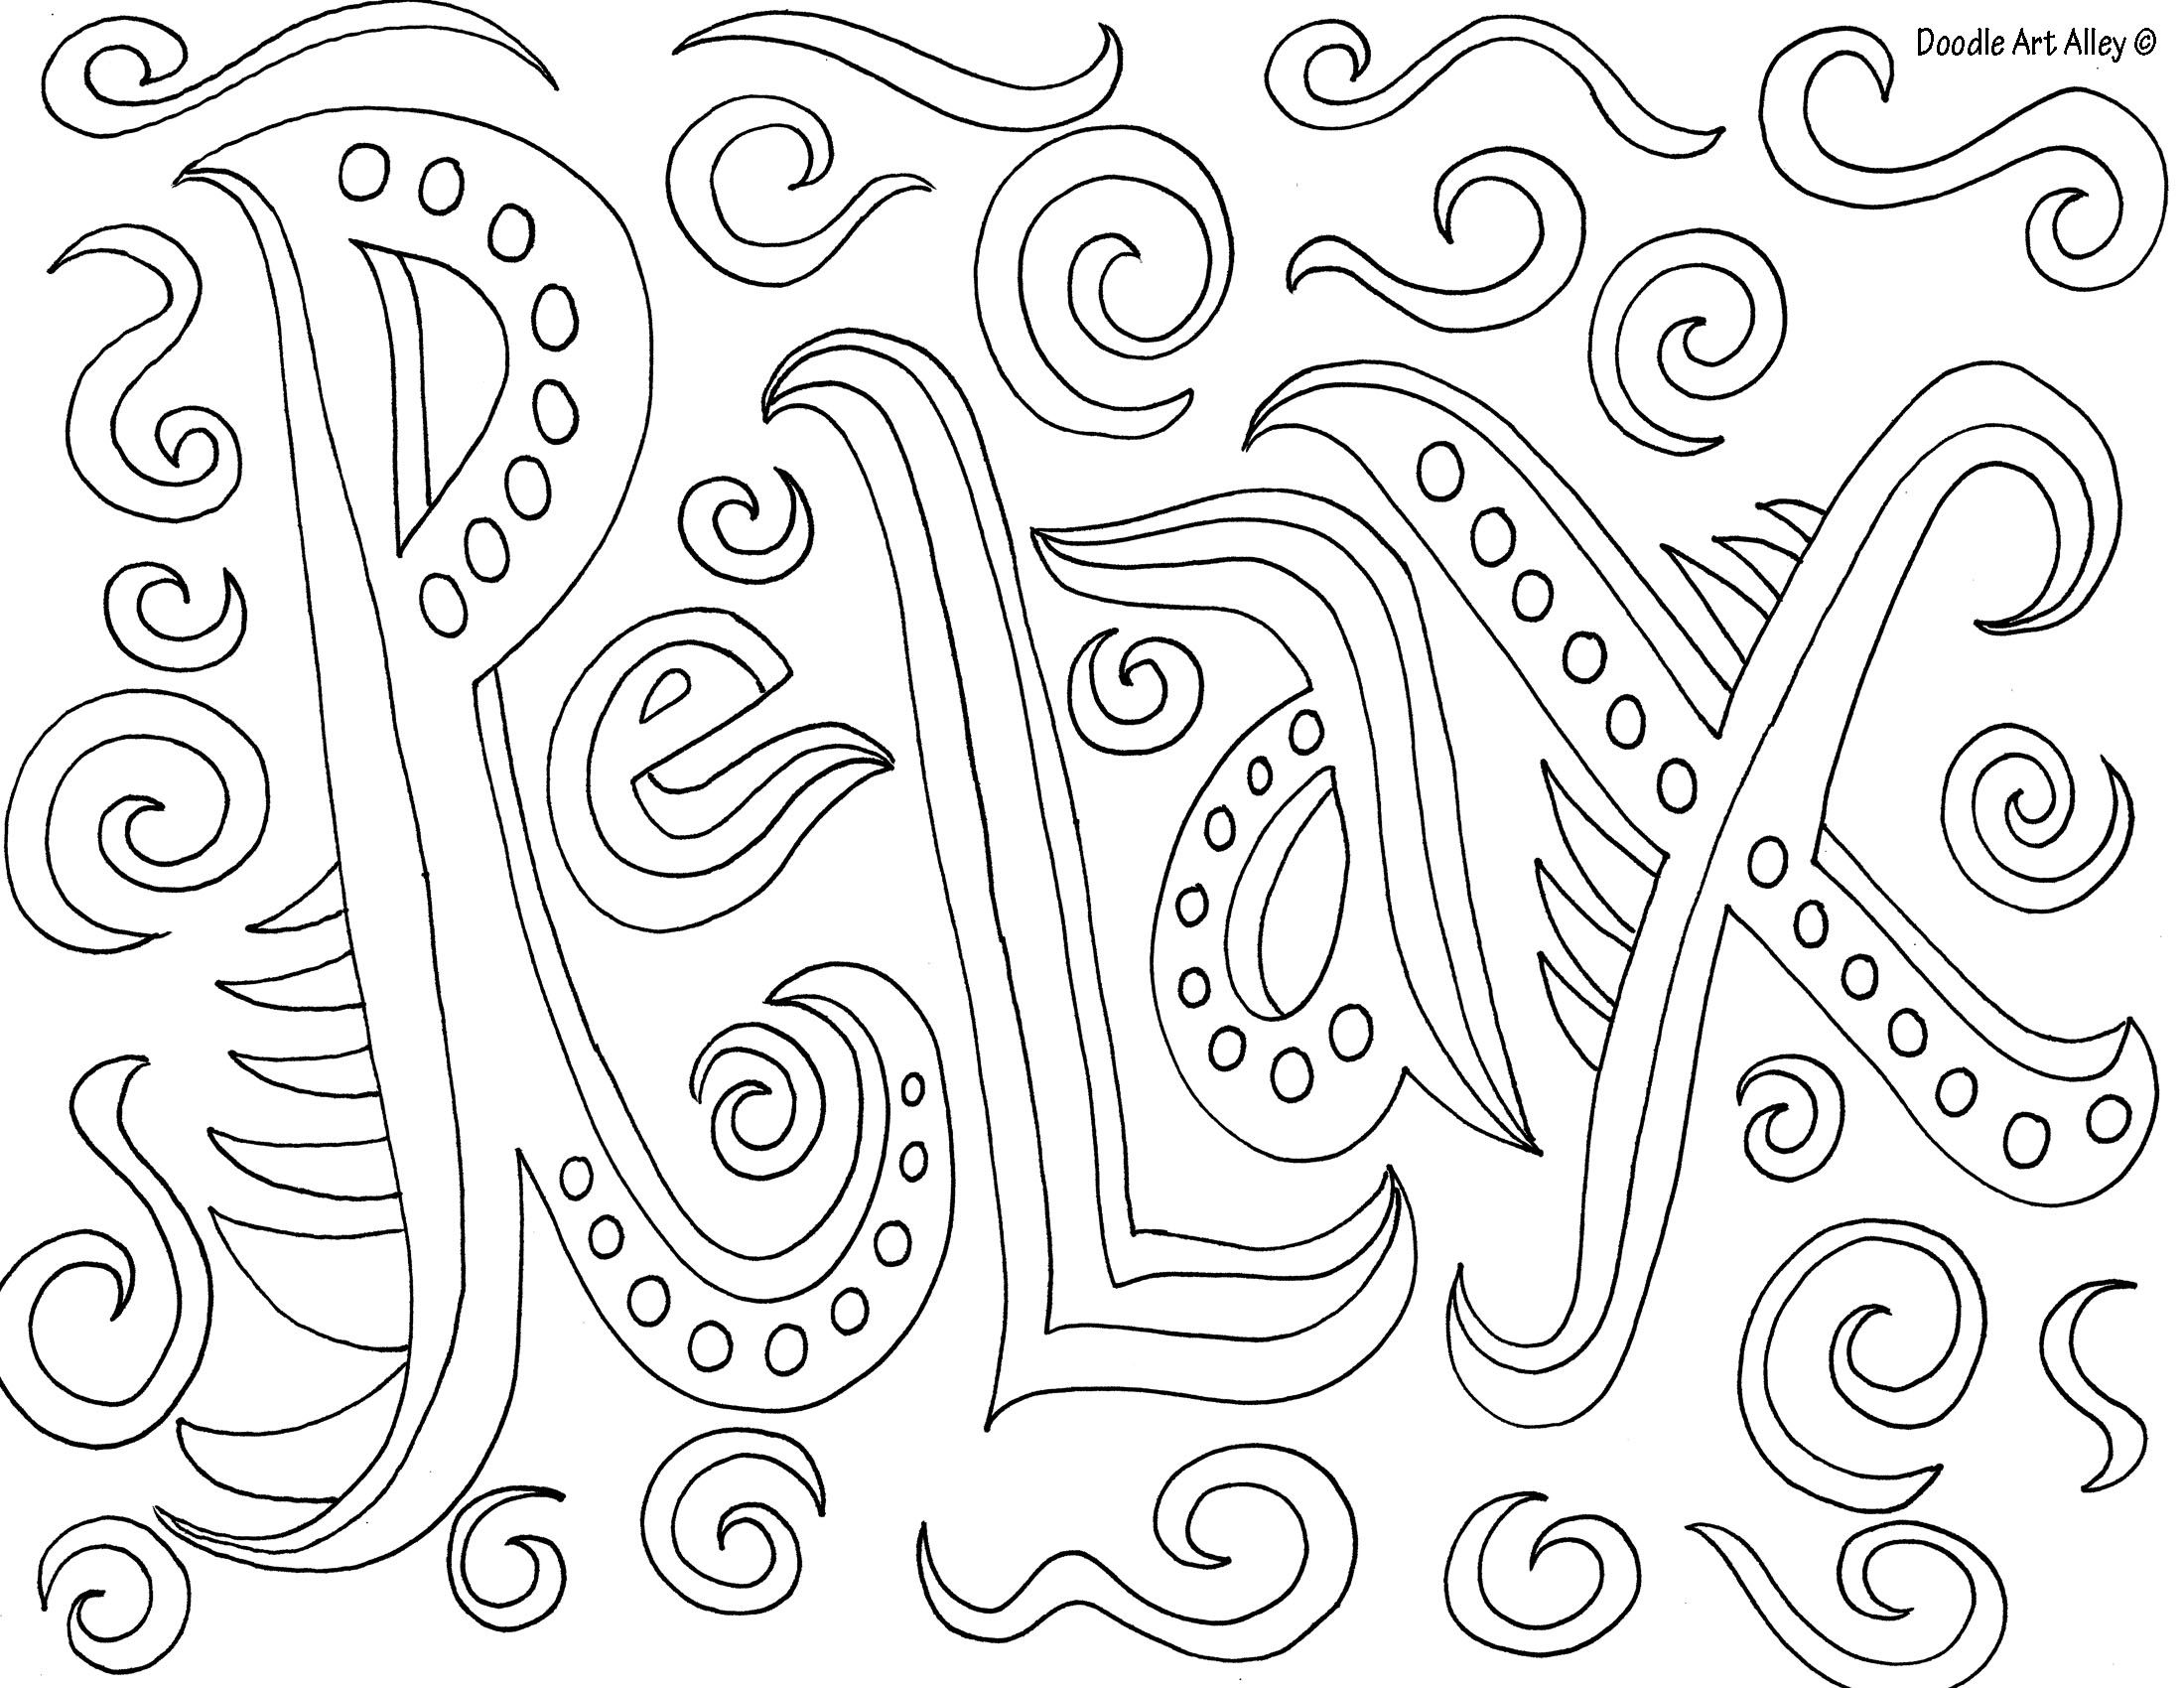 Mindfulness coloring pages printable coloring pages for Free mindfulness coloring pages